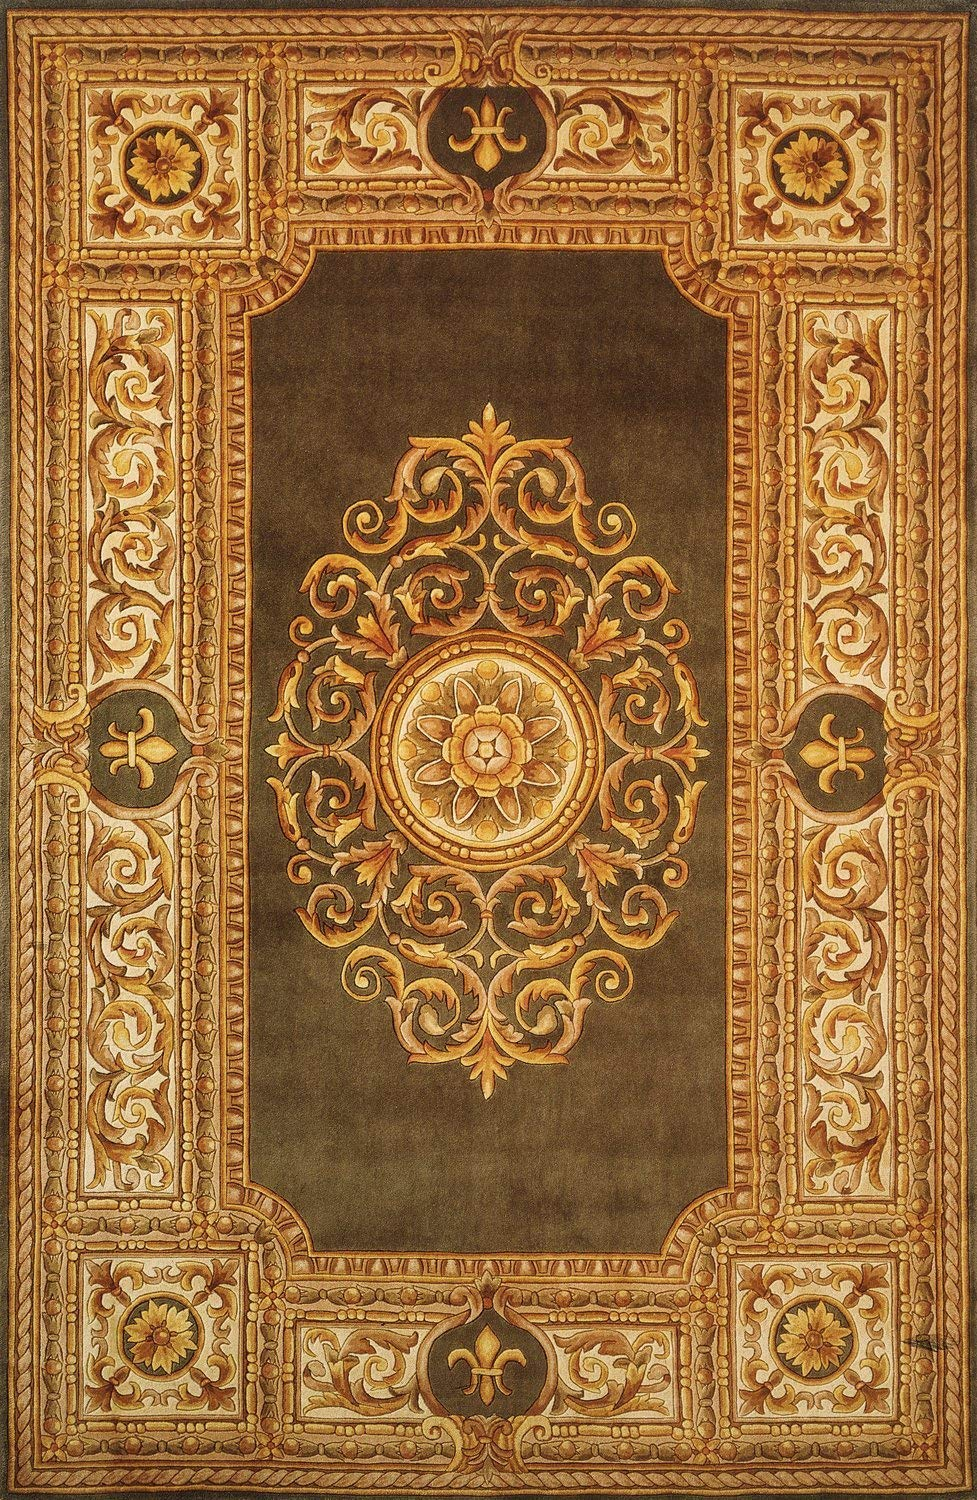 100/% Wool Hand Carved /& Hand Tufted Traditional Area Rug 26 x 8 Runner Momeni Rugs MAISOMA-08GRN2680 Maison Collection Green 2/'6 x 8/' Runner Inc DROPSHIP